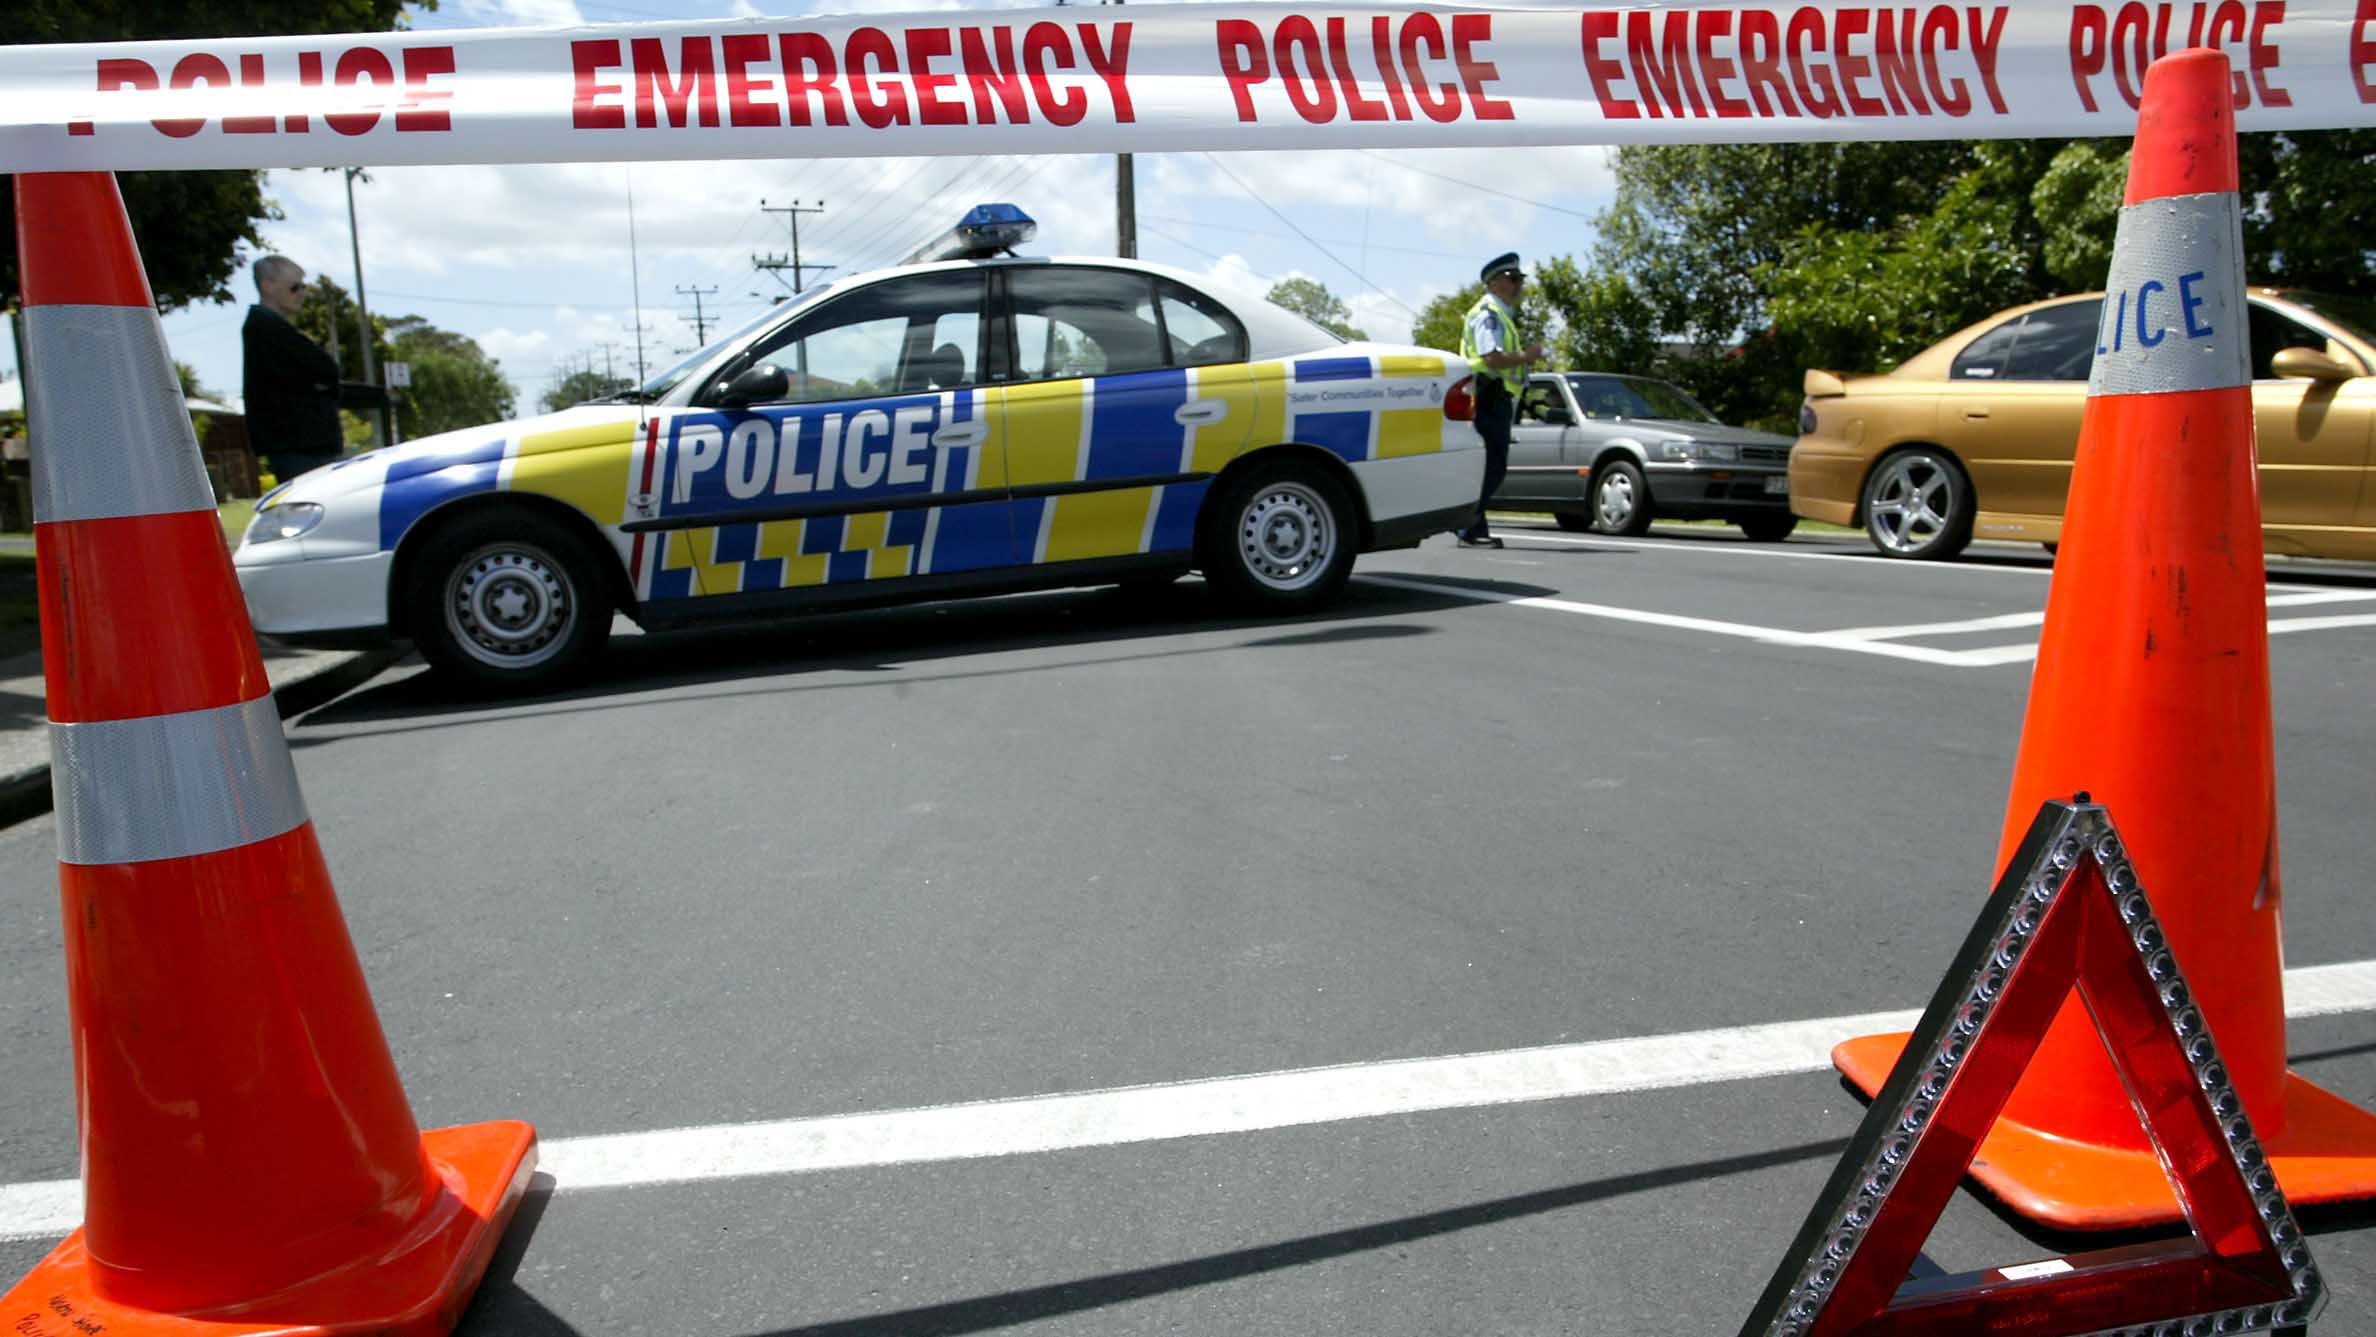 Police attend a car accident (Getty)